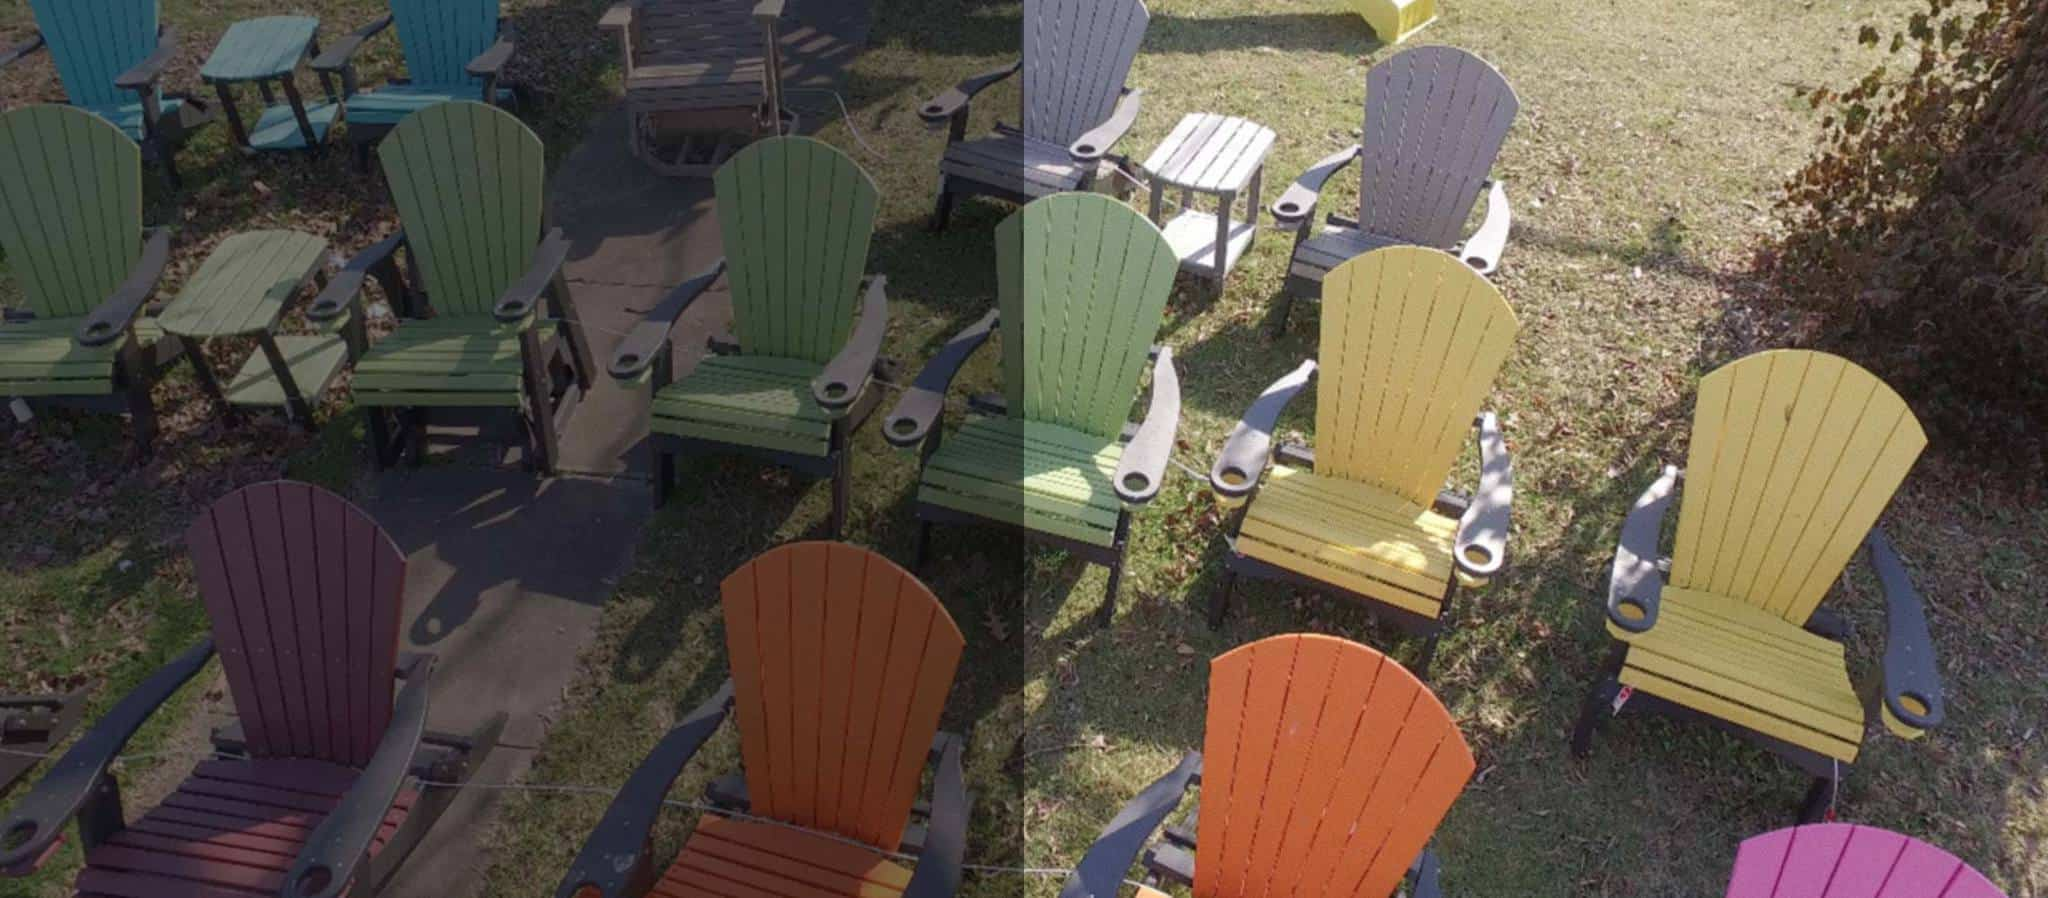 Adirondack Chairs U0026 Outdoor Furniture, New From Ku0026K Portable Buildings